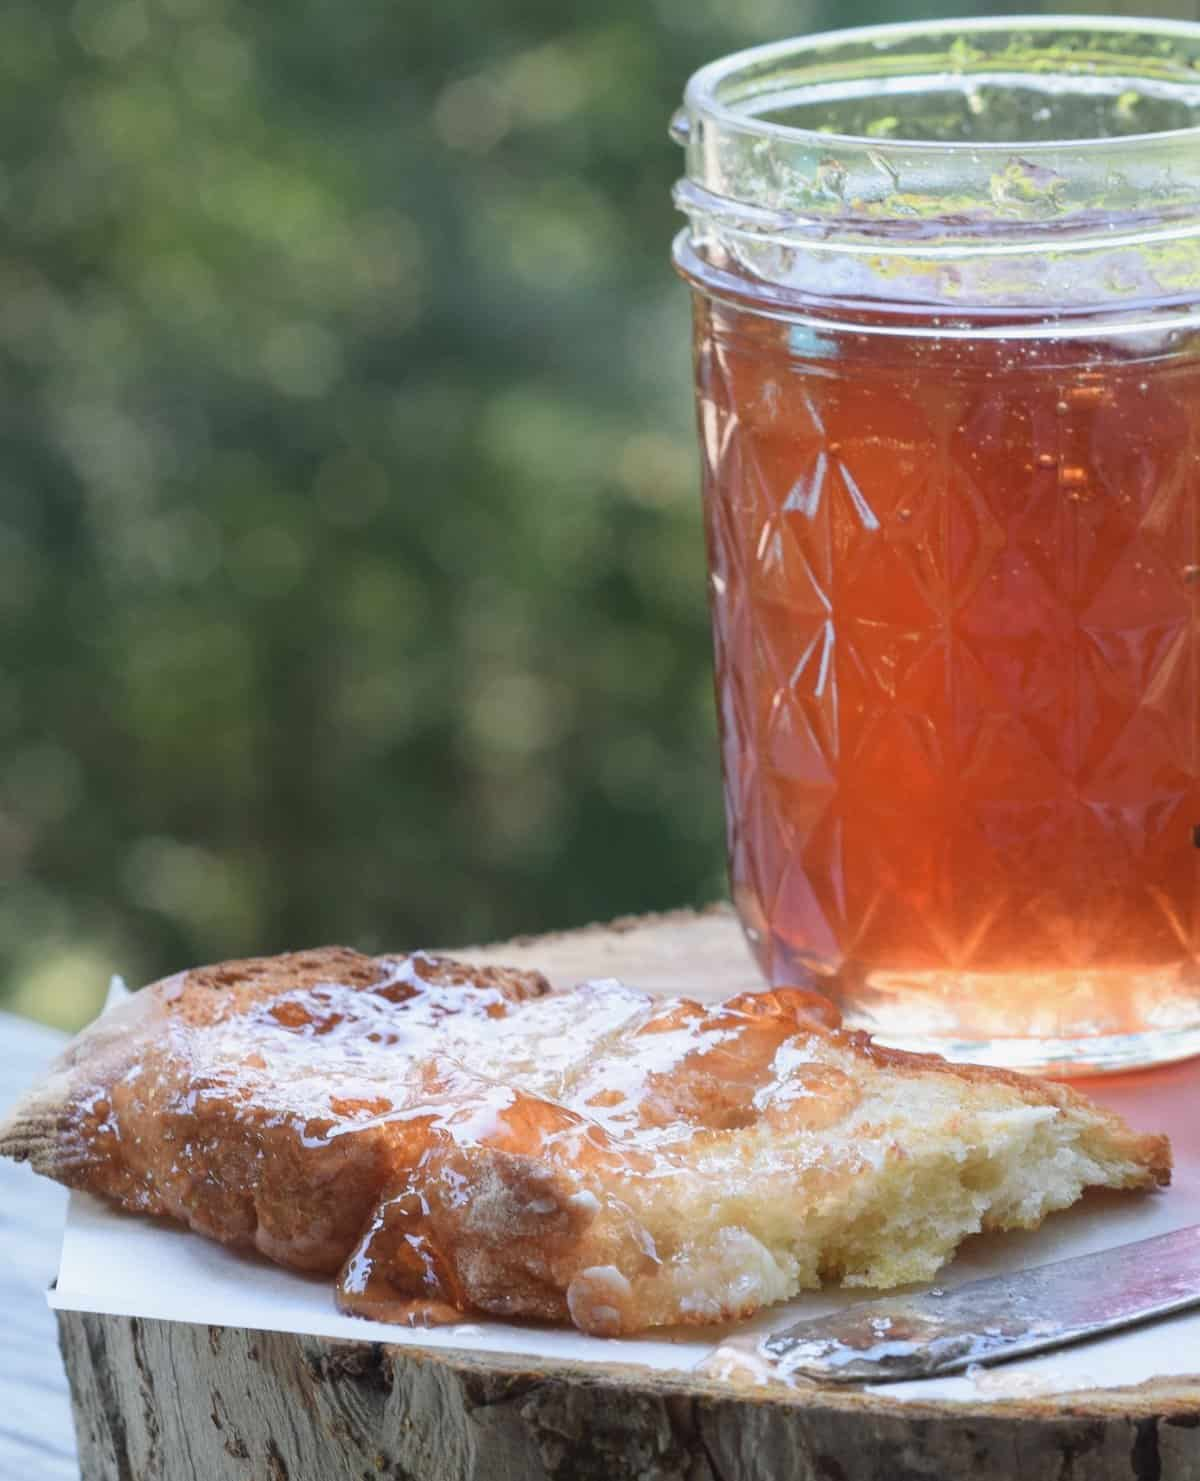 scuppernong jelly in jar with slice of crusty bread covered in jelly